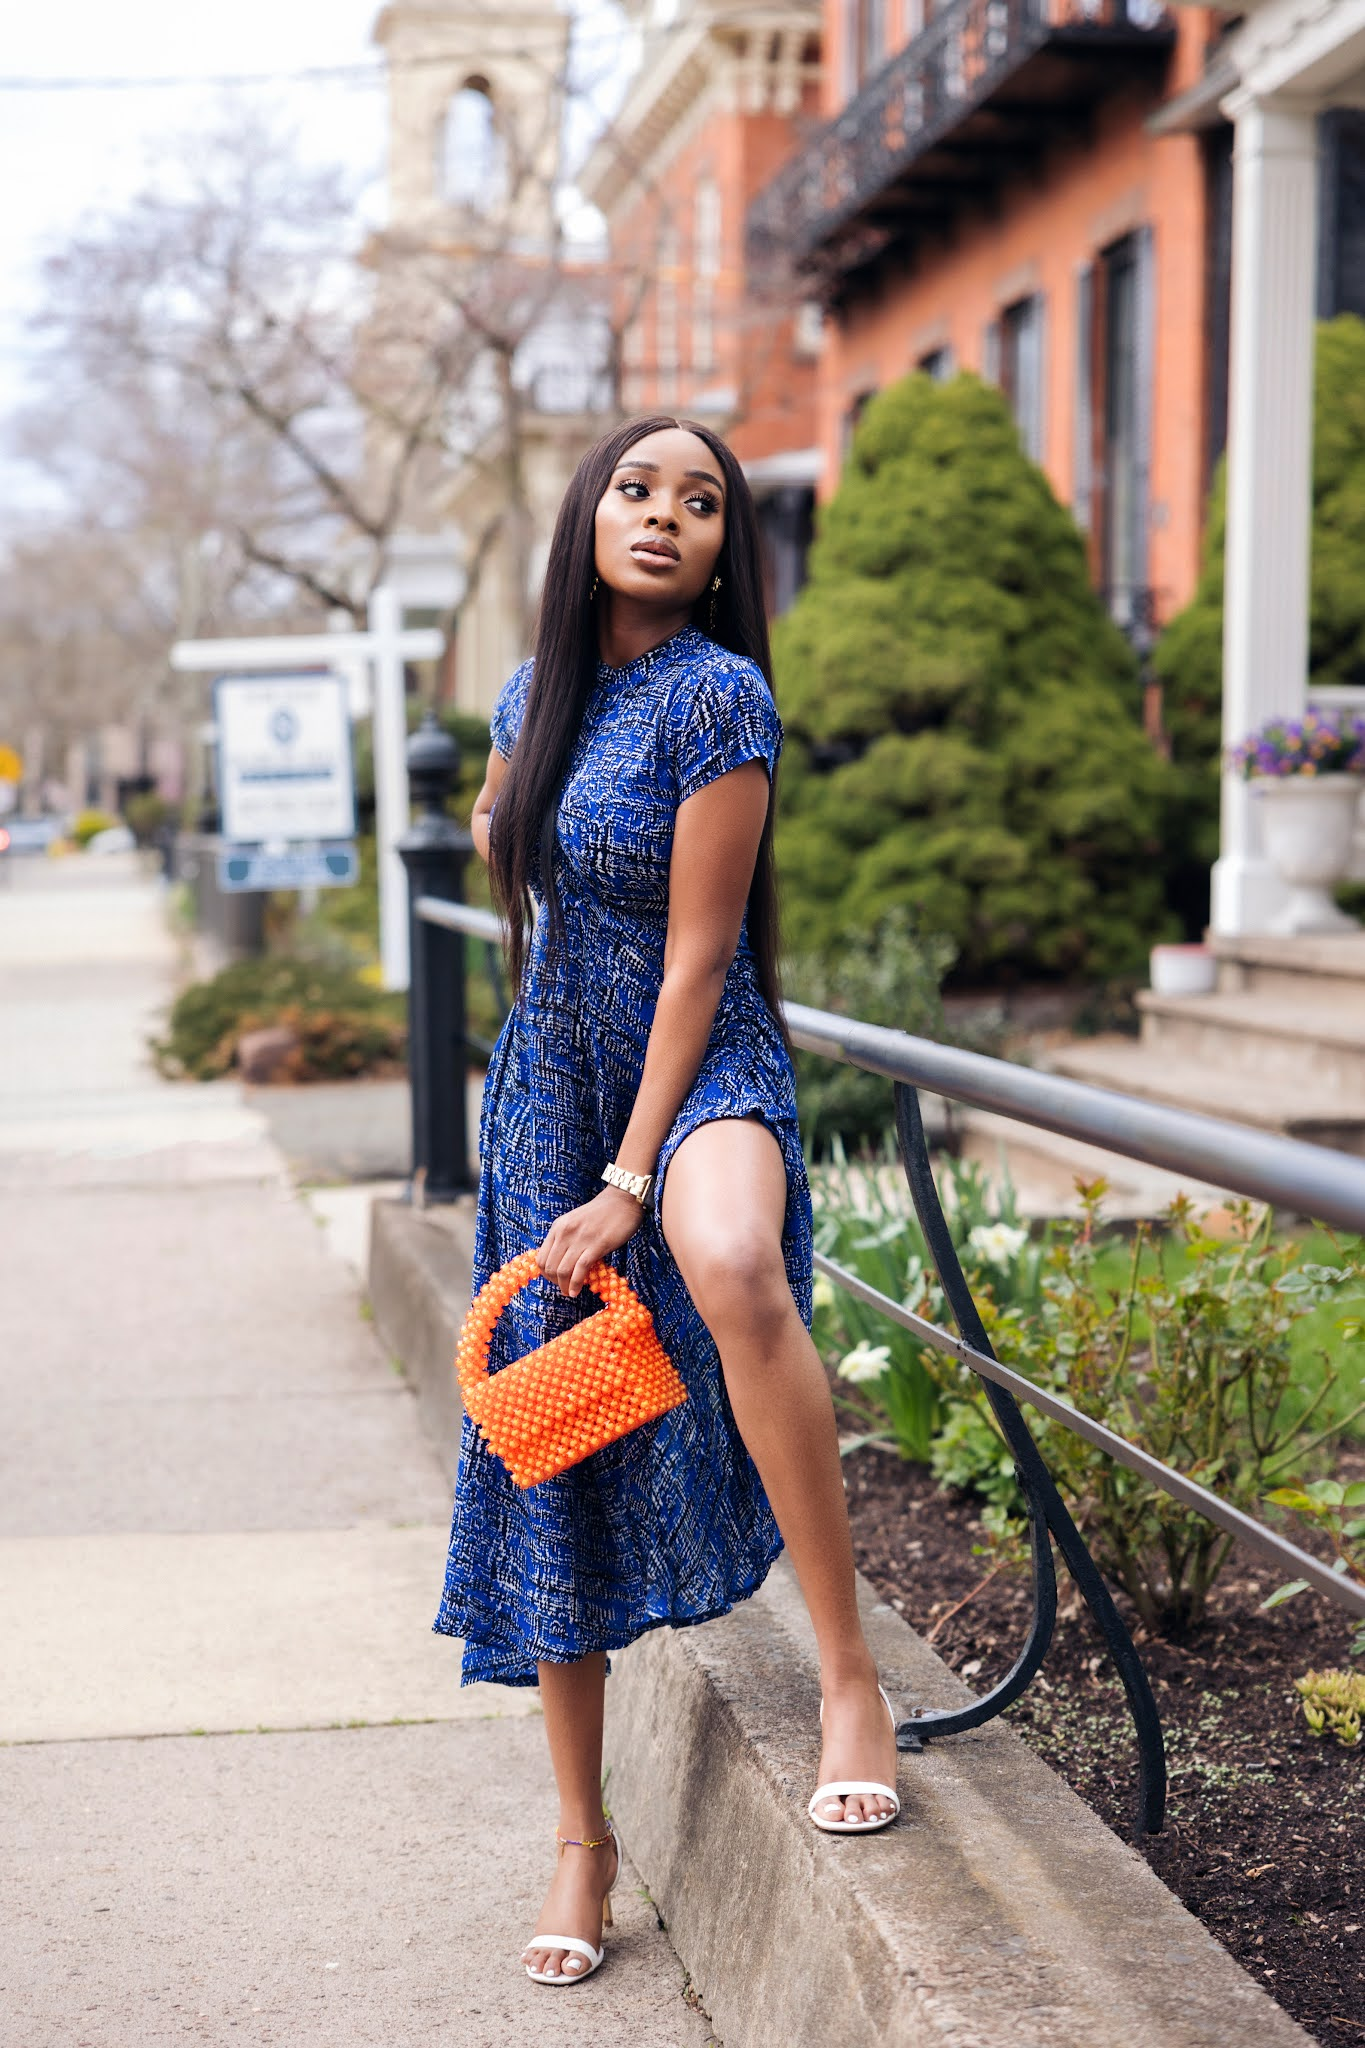 How to wear a Printed dress for date night